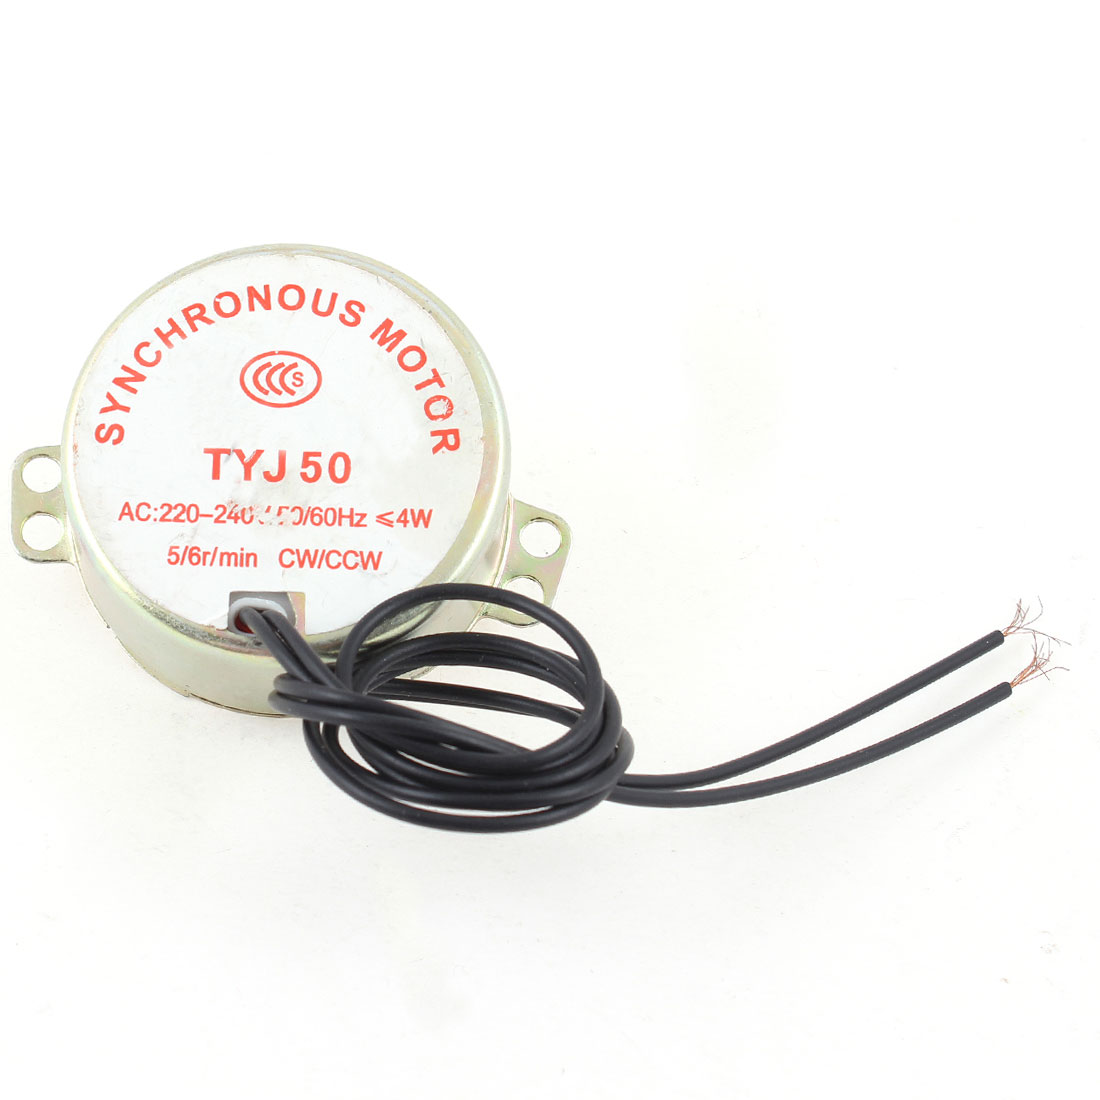 Metal Shell CW/CCW Direction 5/6RPM Synchronous Motor AC 220-240V